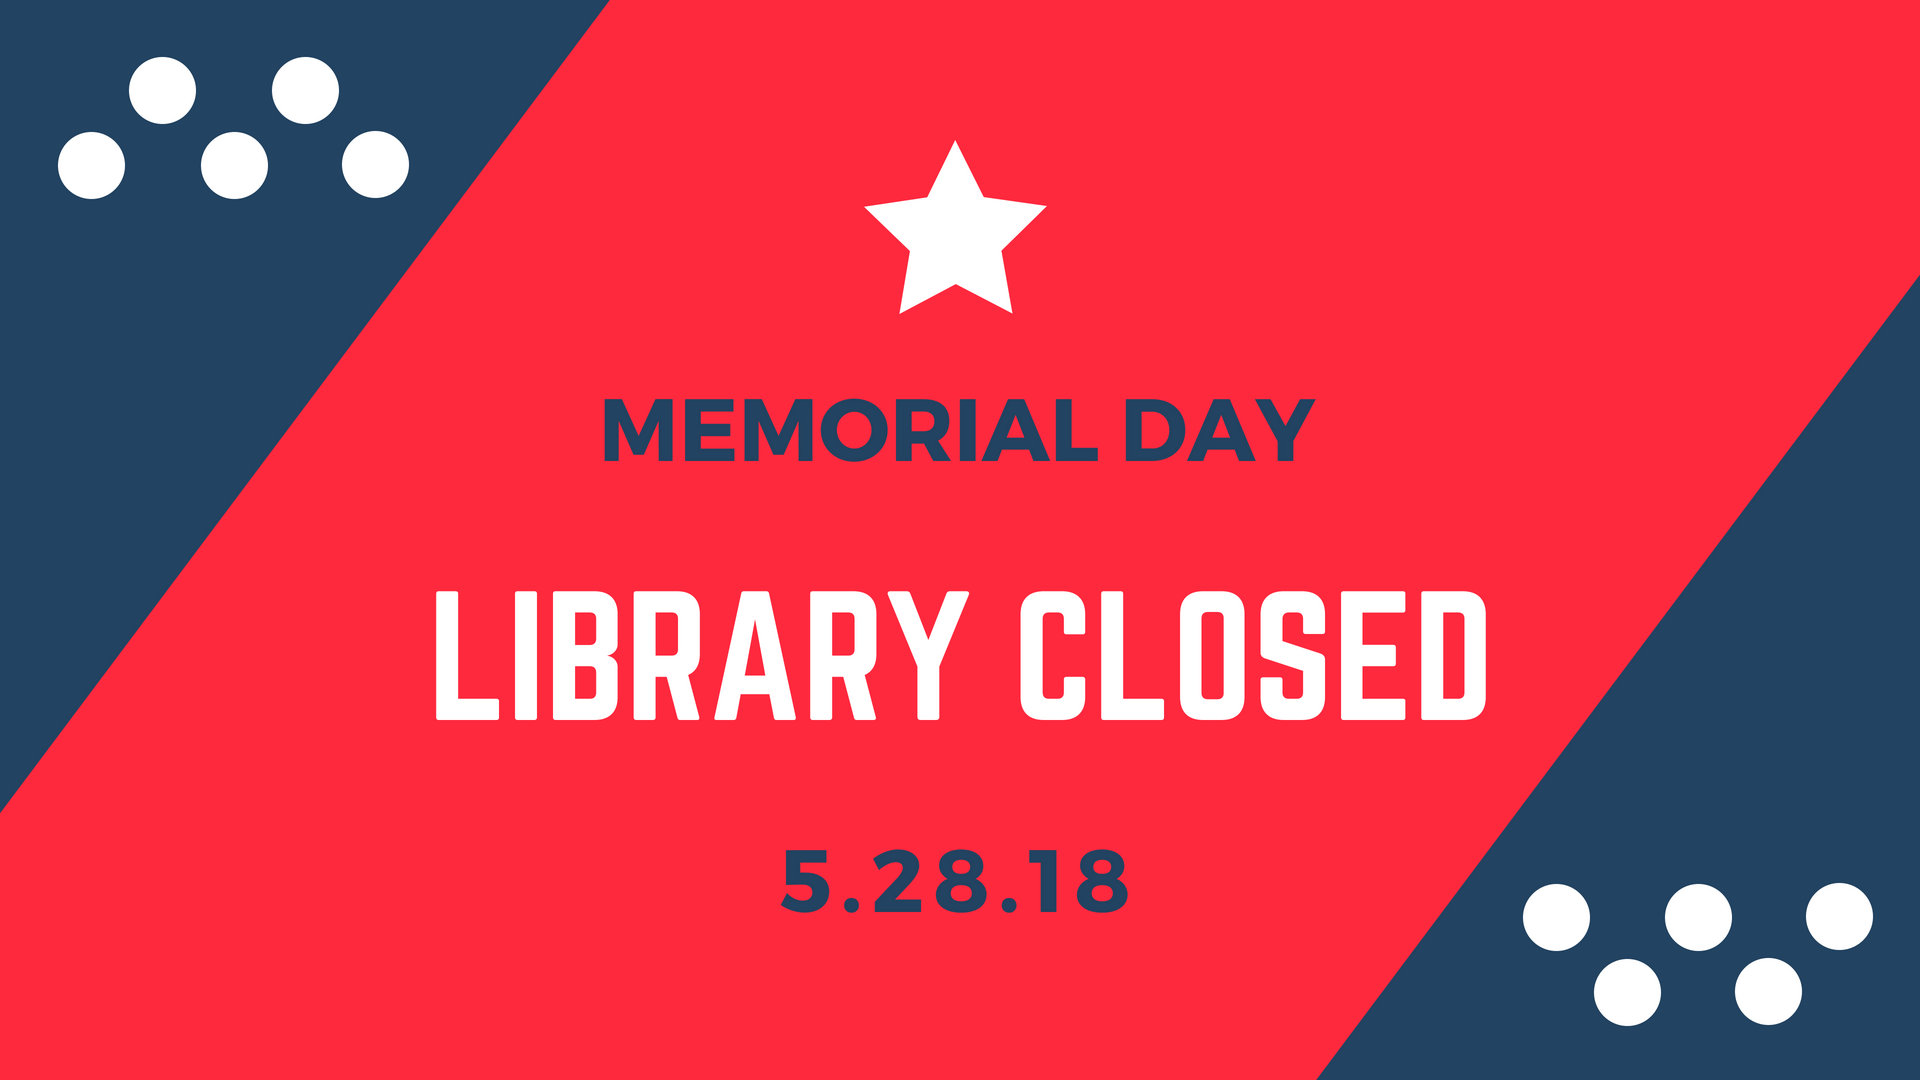 Memorial Day Library Closed 5/28/18